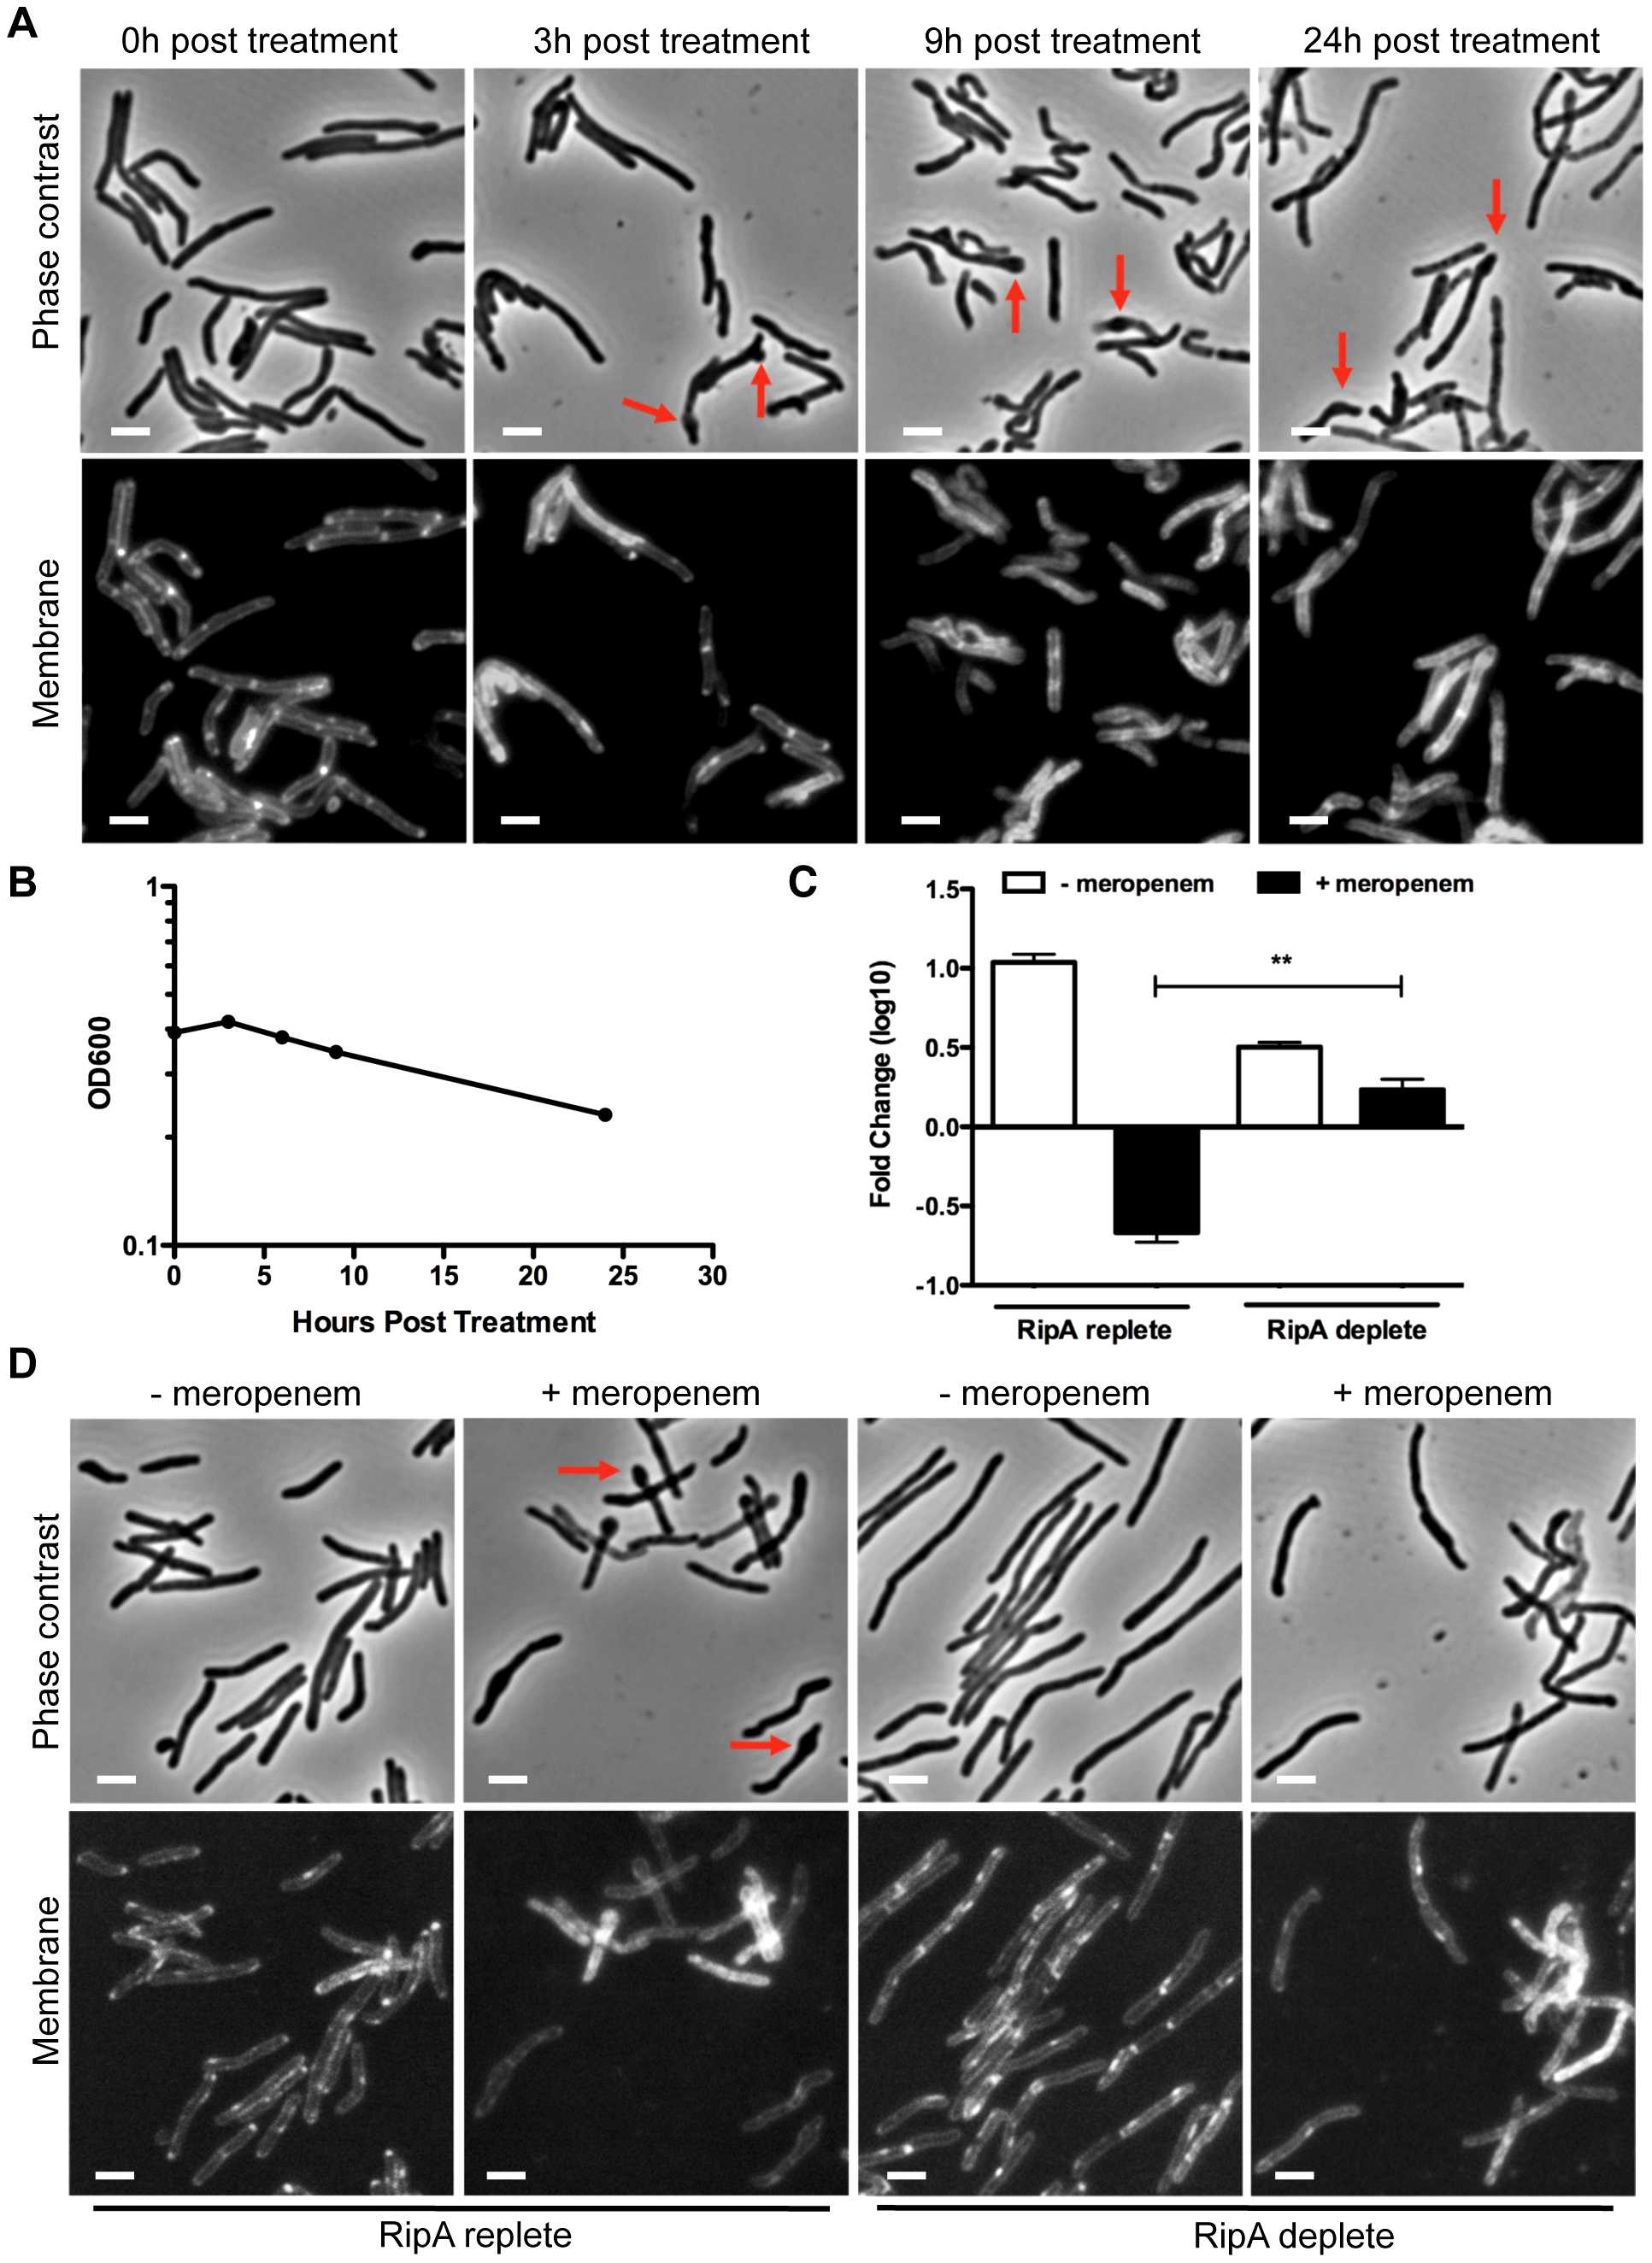 RipA depletion protects cells from meropenem-induced lysis.